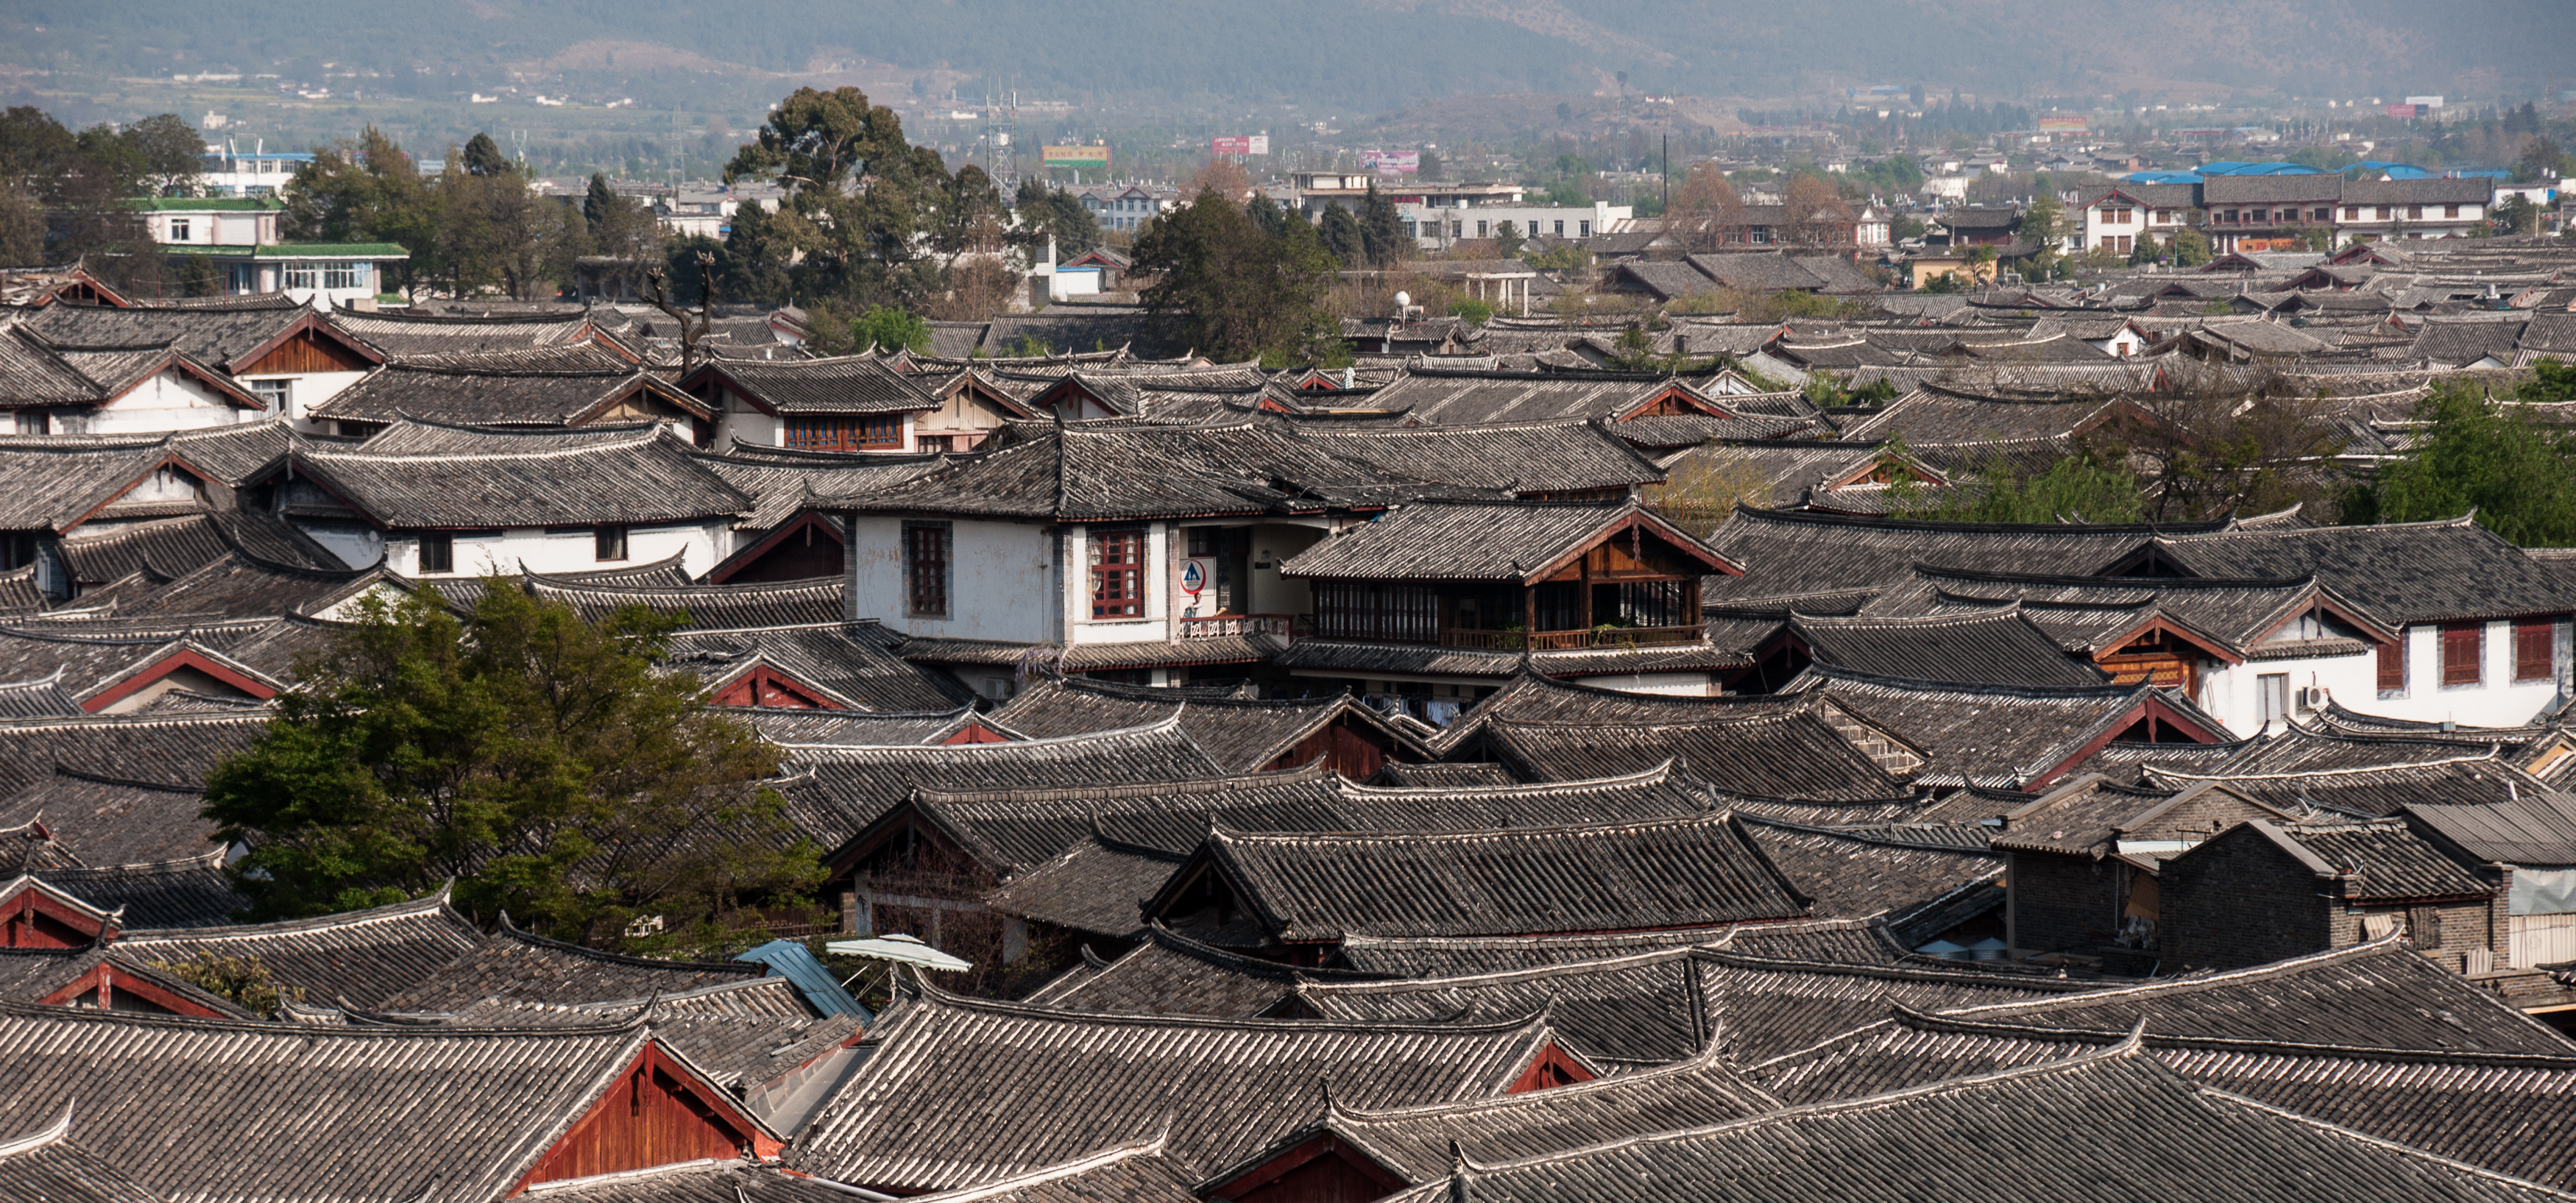 The Old Town Lijiang